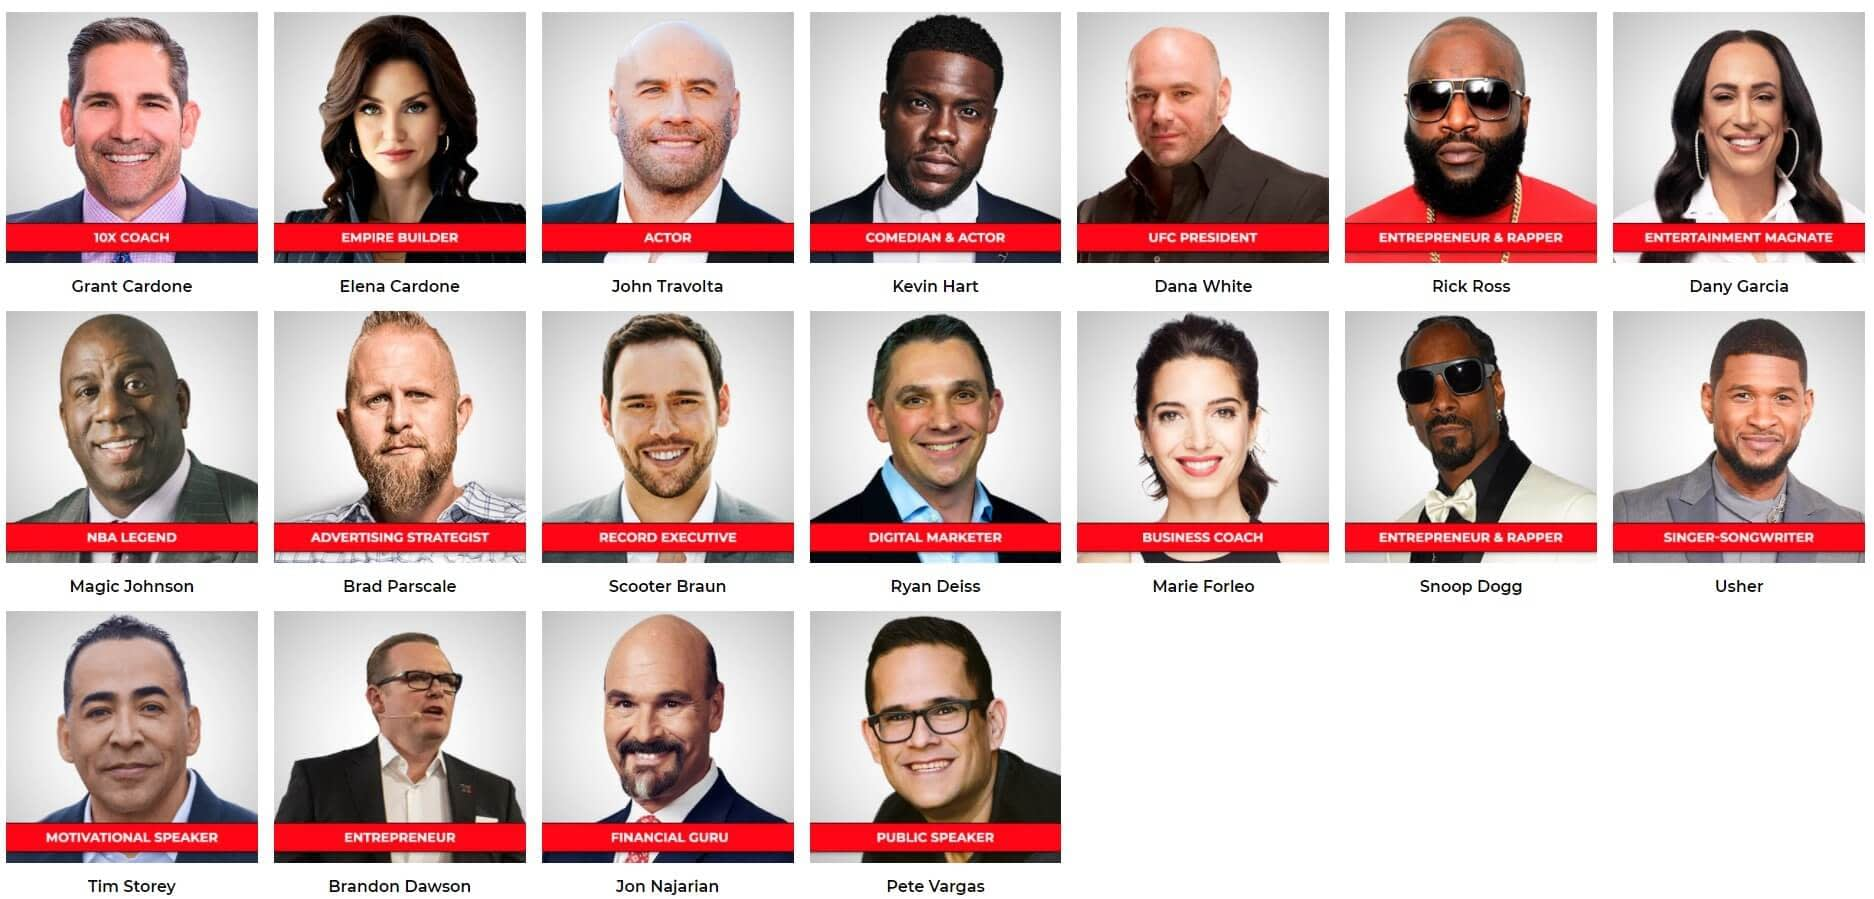 10x growth conference is a great example how to use influencers and get to the next level with your b2b digital marketing or ofline marketing. Running offline or online b2b events with influencers is very powerful in b2b influencer marketing strategies.